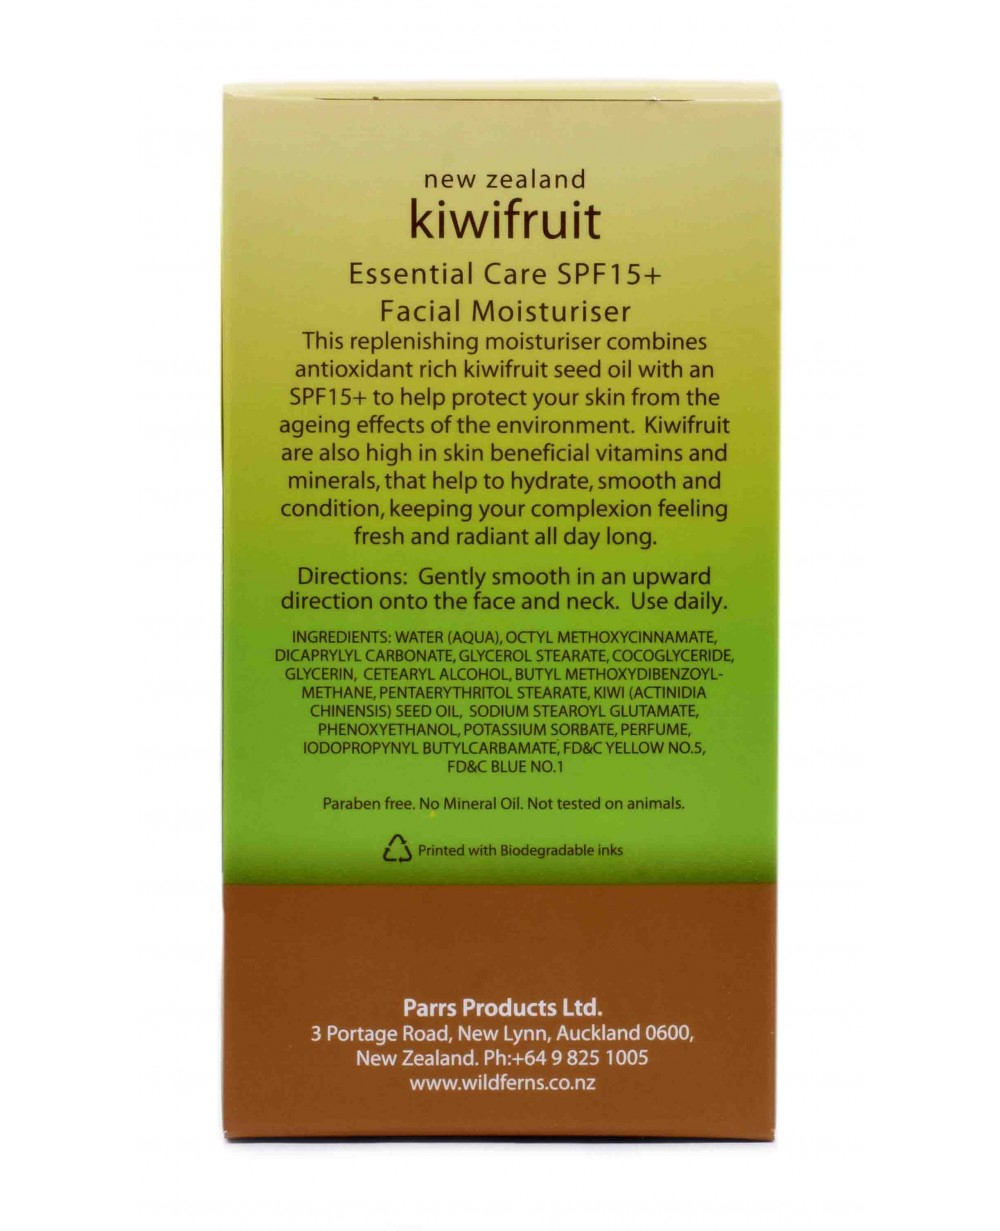 WILD FERNS KIWIFRUIT FACIAL MOISTURISER WITH SPF 15+ 75 ML